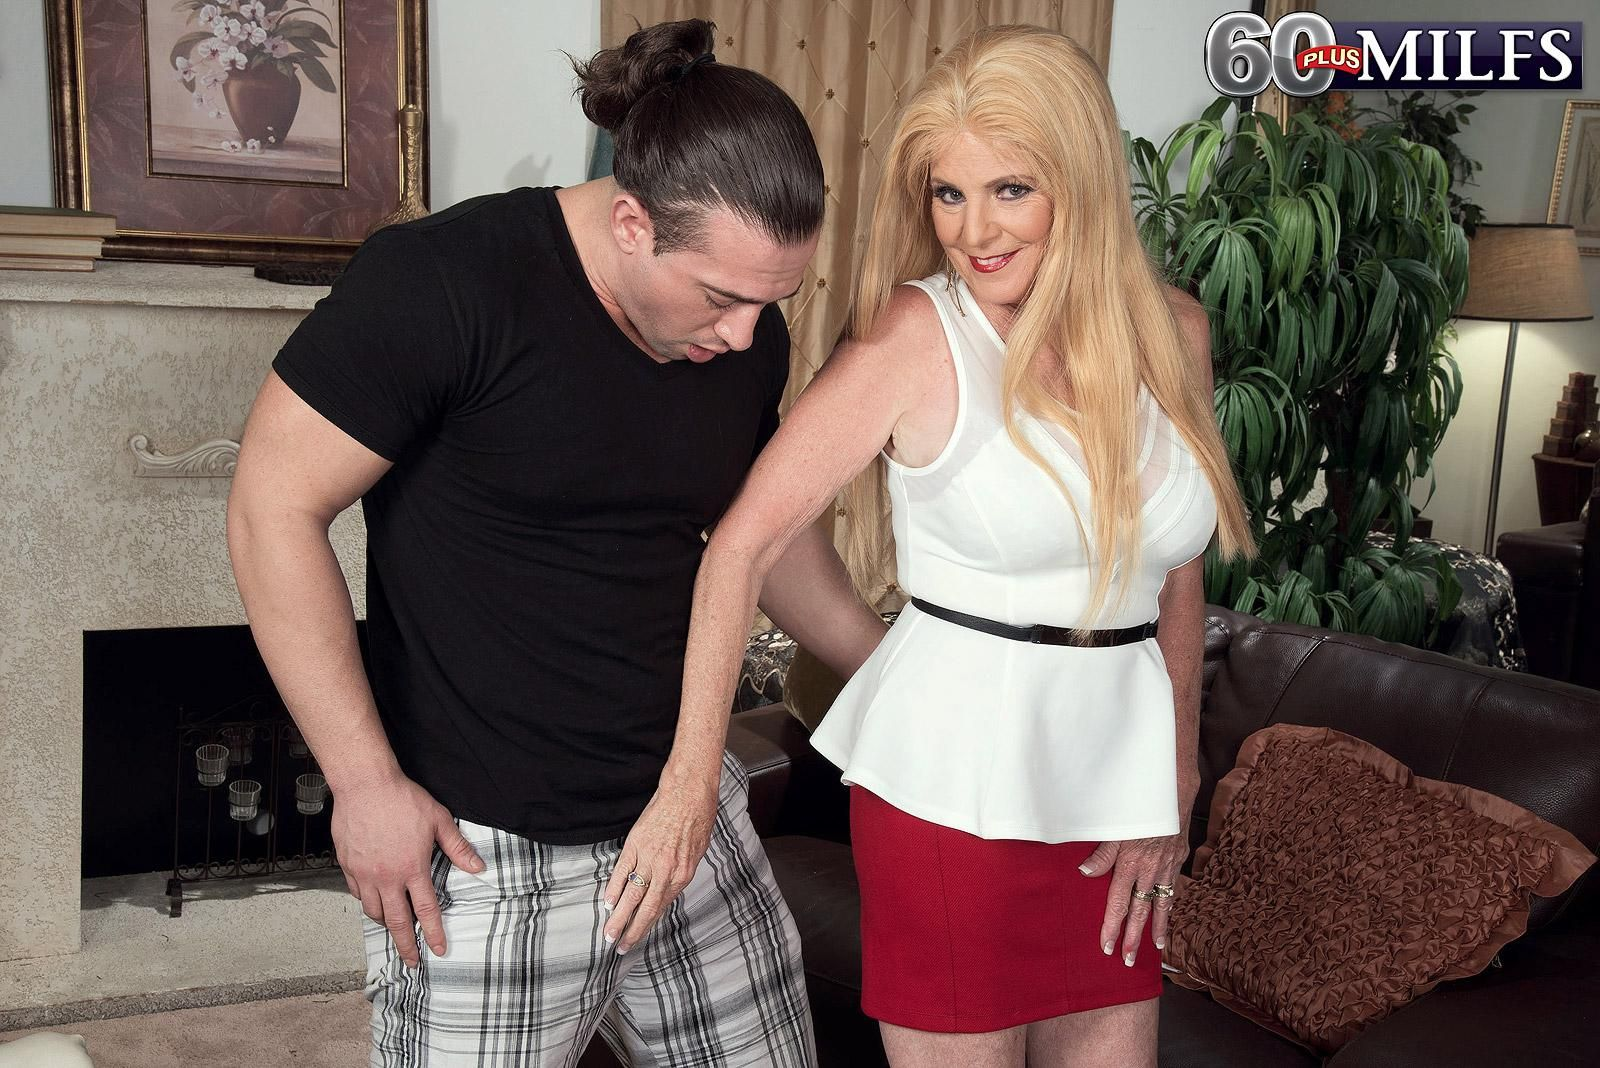 Blonde 60plus MILF Charlie has her big natural tits unleashed by a younger man